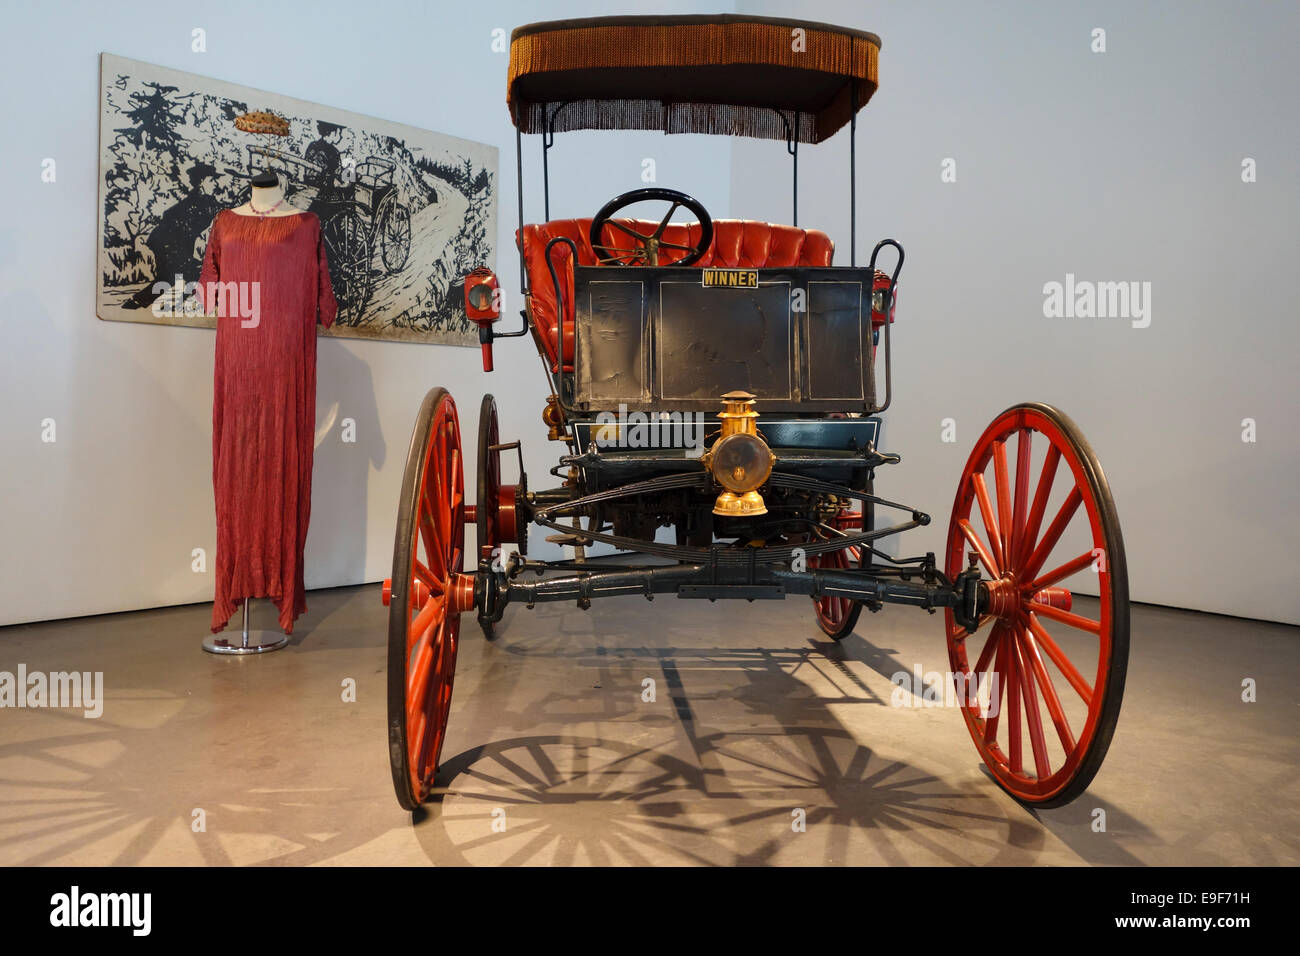 1898 Winner, 2 cylinder at Car, Automobile Museum of Málaga, Andalusia, Spain. - Stock Image